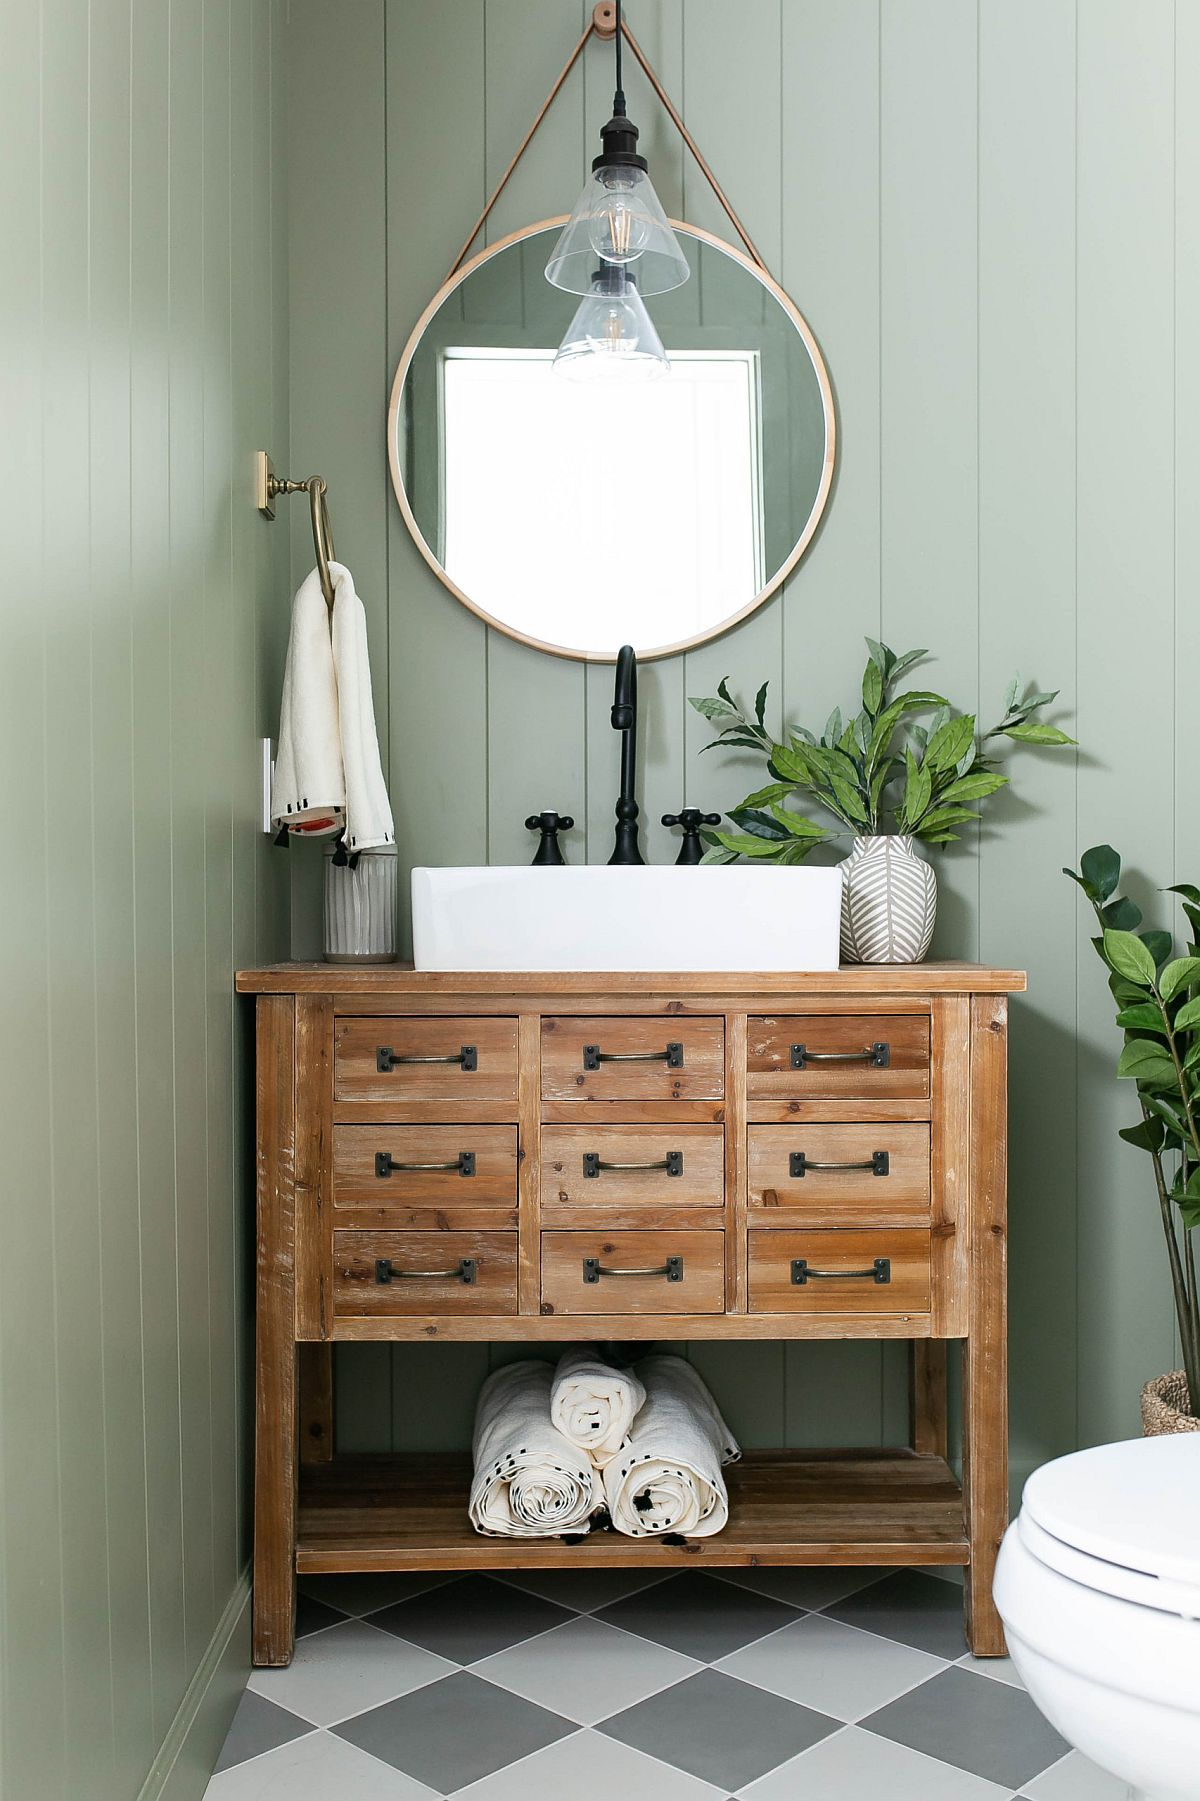 Brilliant blend of pastel blue and wooden vanity in the classy farmhouse vanity